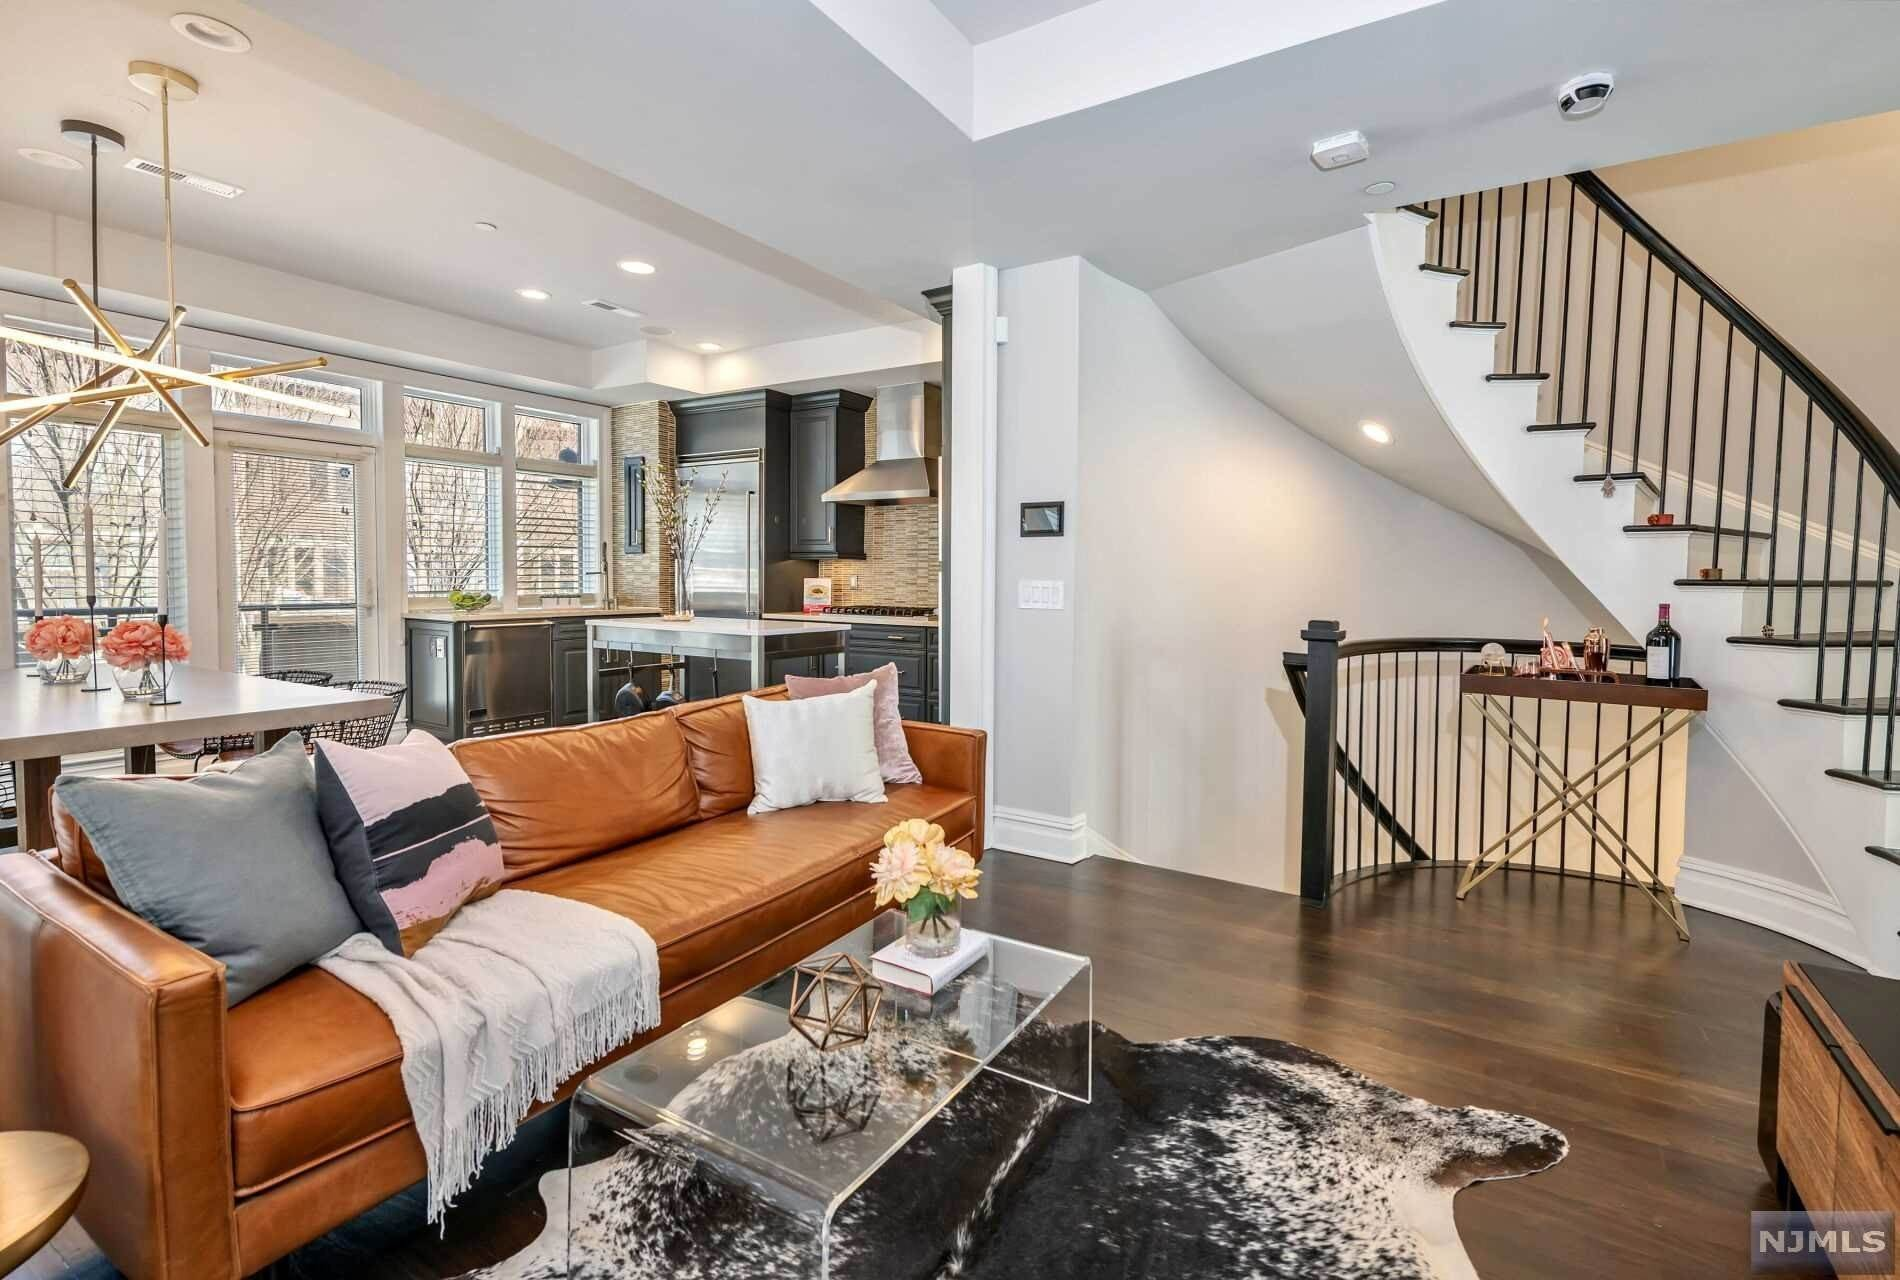 3. Condominium for Sale at 8 Cambridge Way Weehawken, New Jersey, 07086 United States